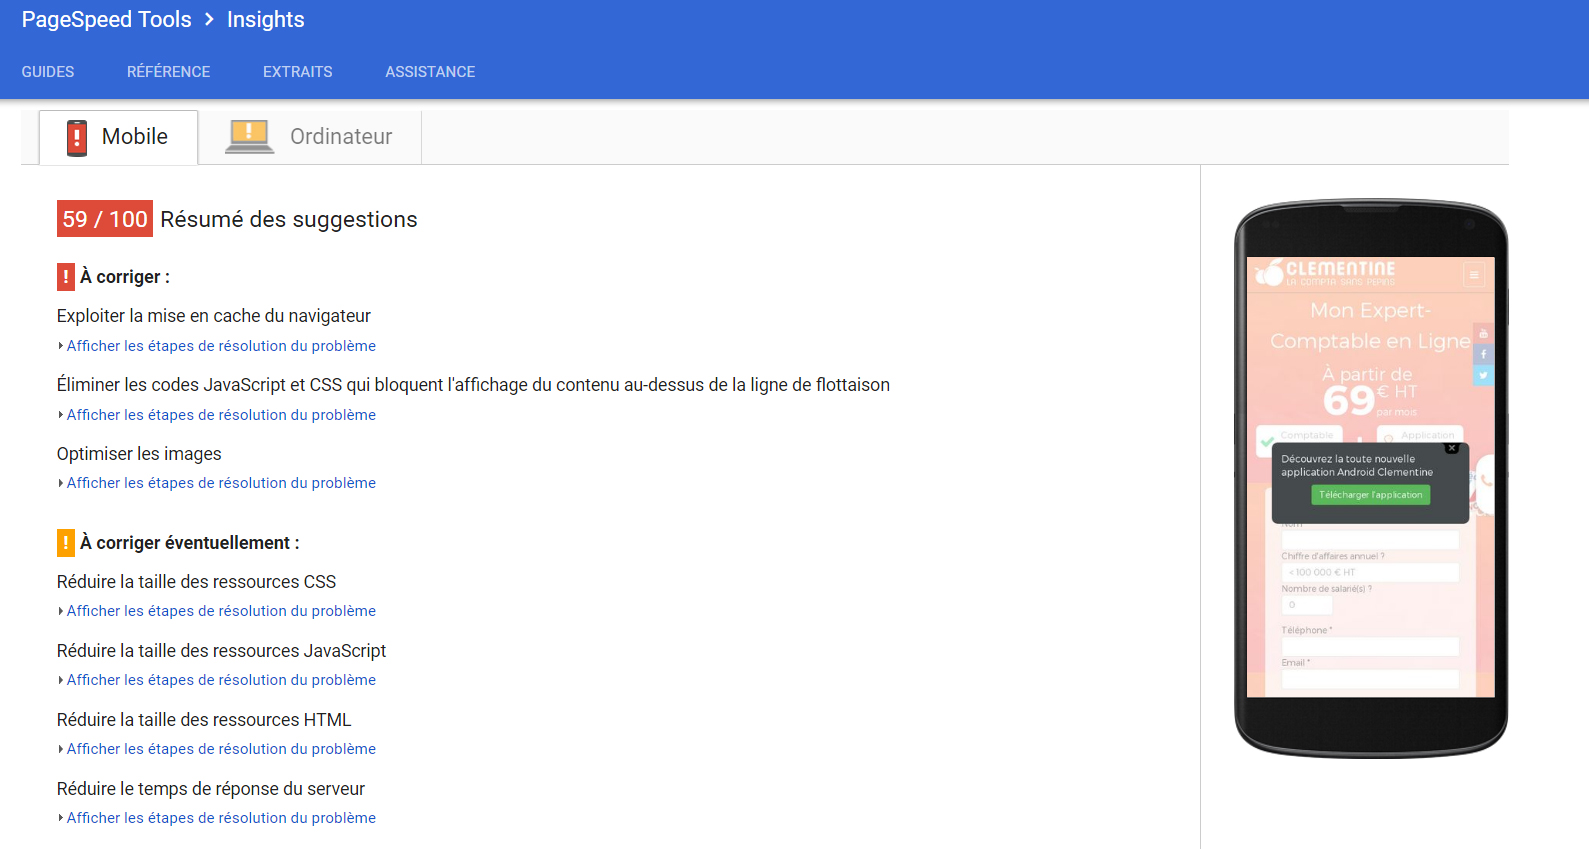 Test d'une page sur l'outil Google PageSpeed Insights